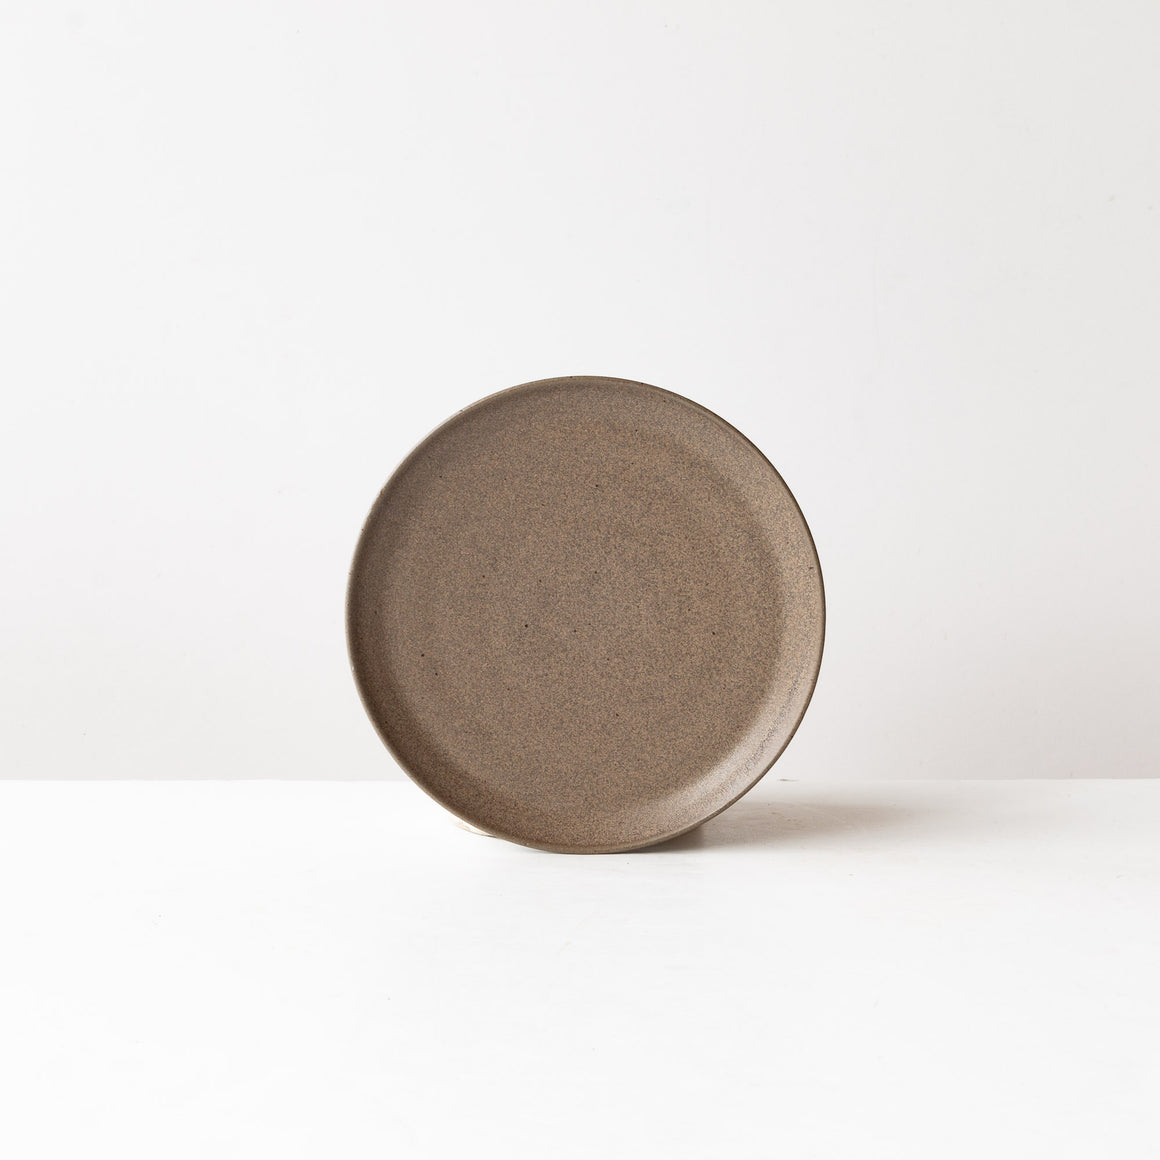 Matte Black - Handmade Grey Stoneware Small Plate - Sold by Chic & Basta